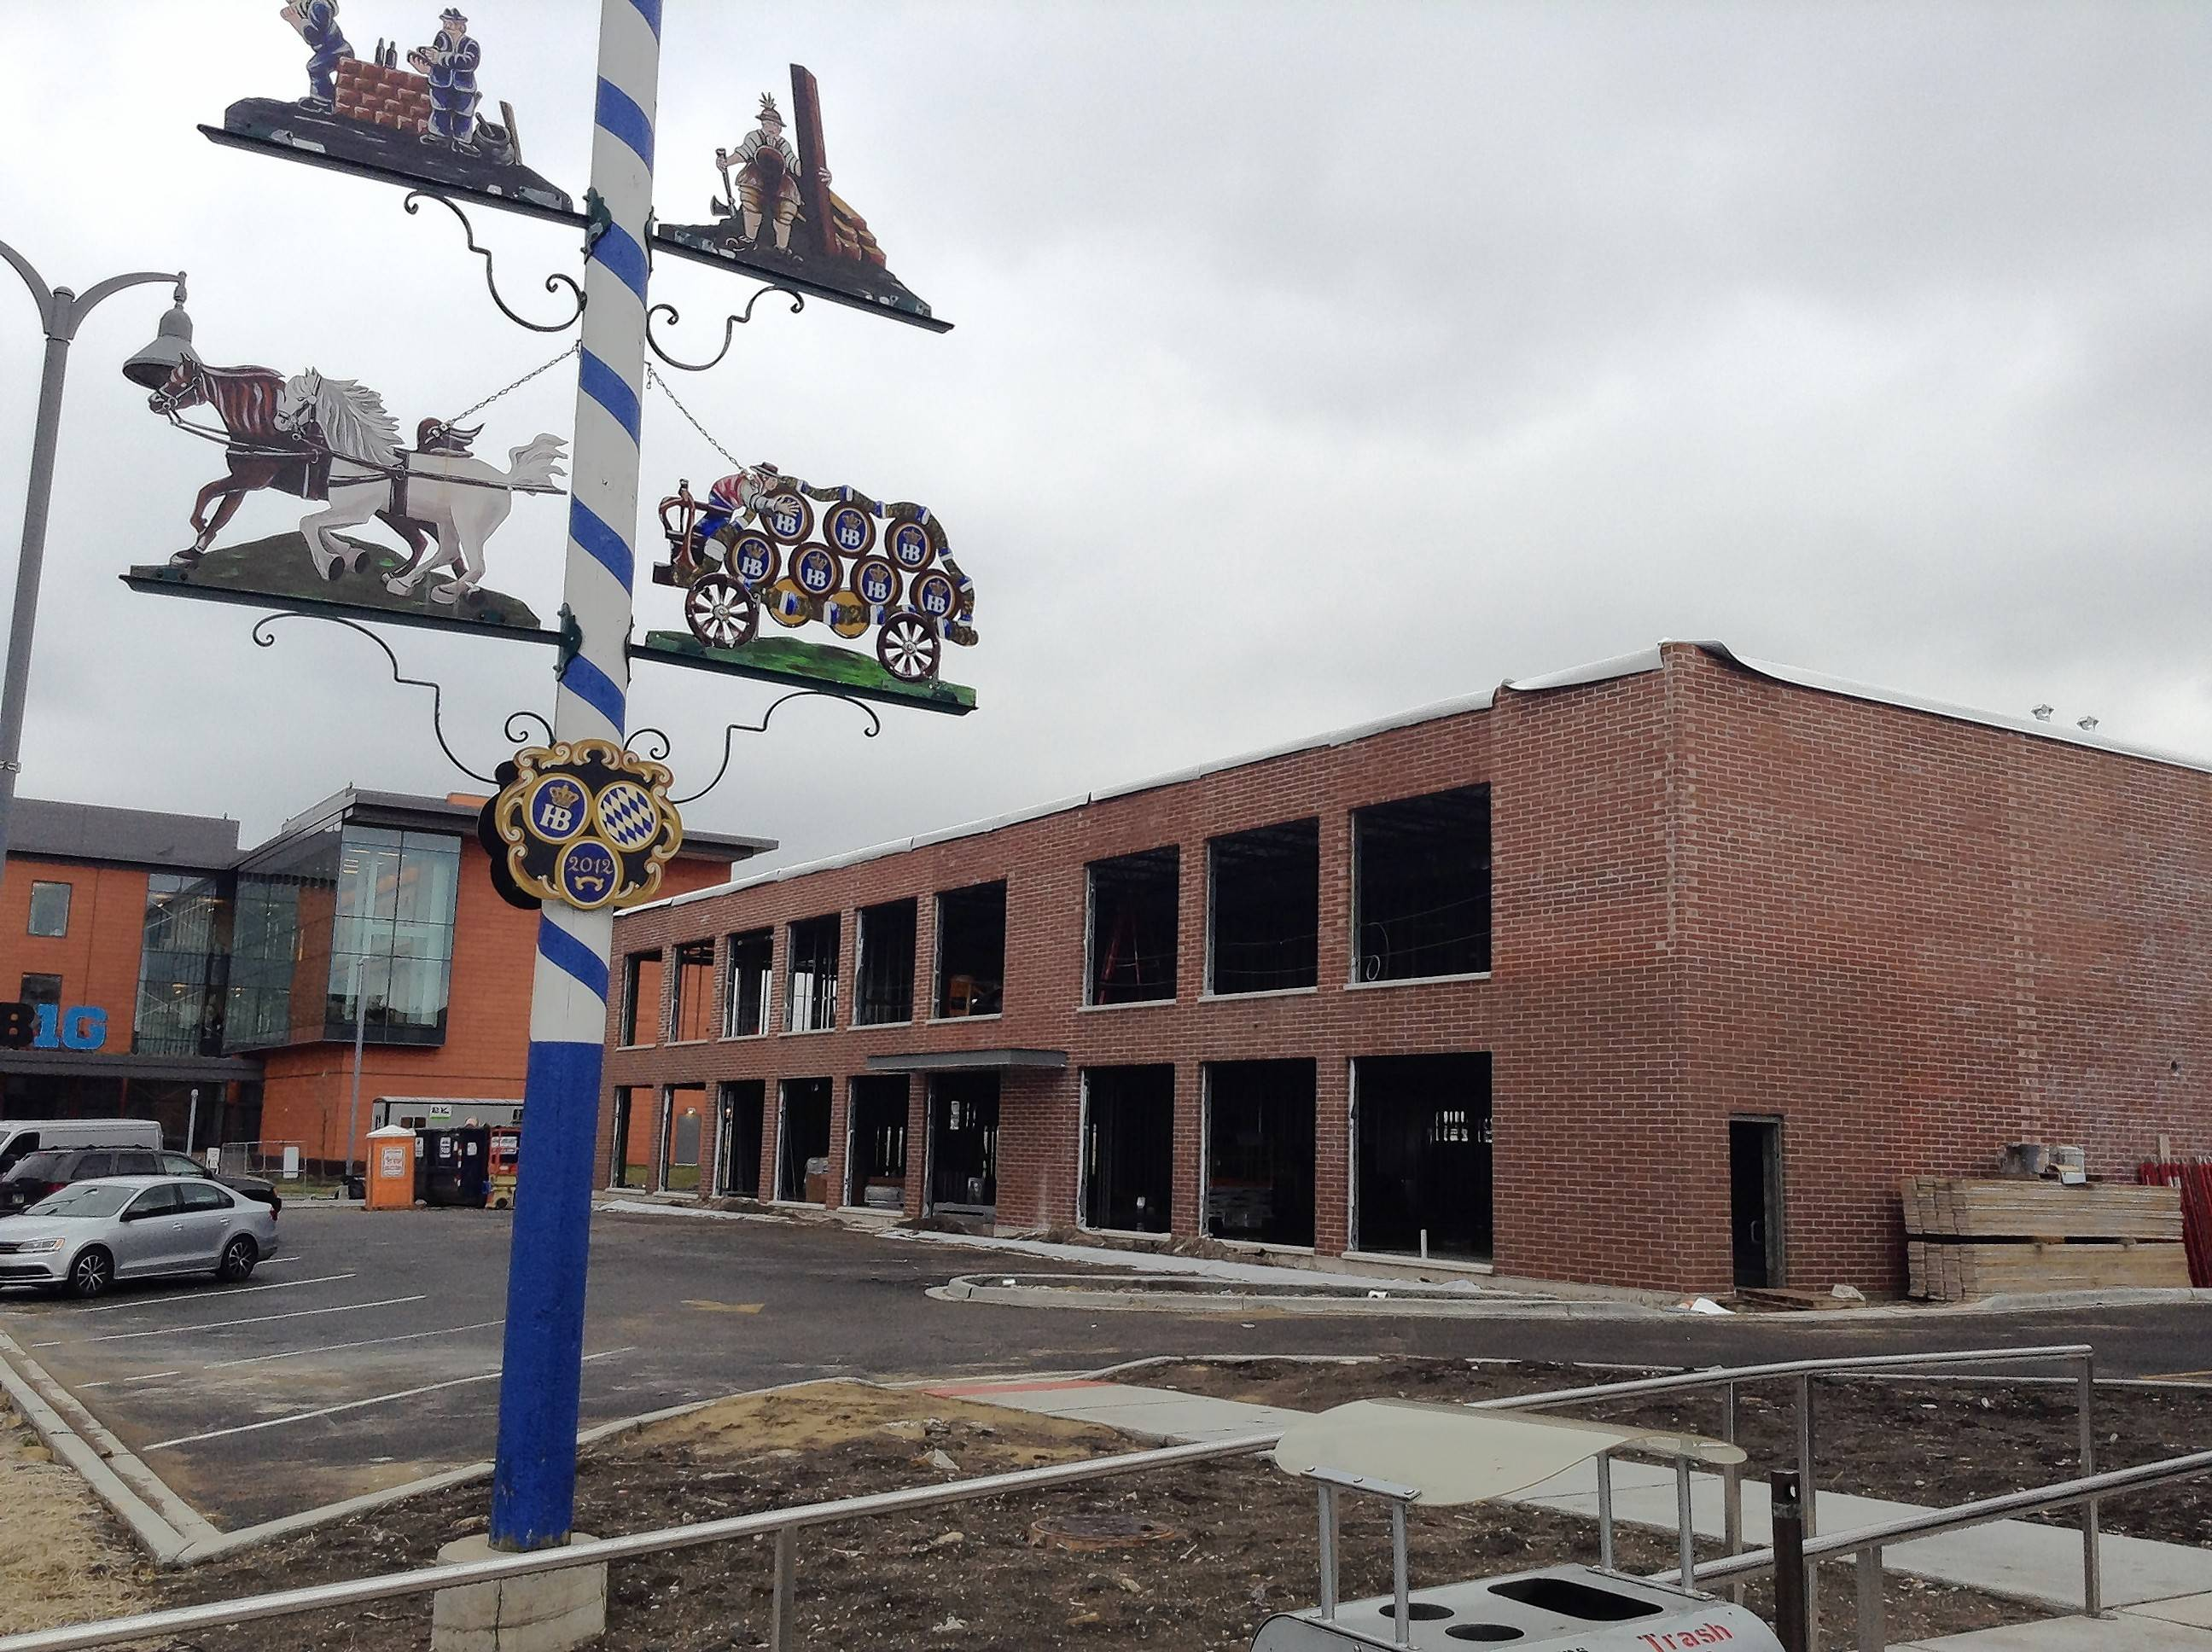 A two-story, 20,000-square-foot Harley-Davidson dealership is under construction next to Hofbrauhaus Chicago and the Big Ten Conference headquarters in Rosemont.